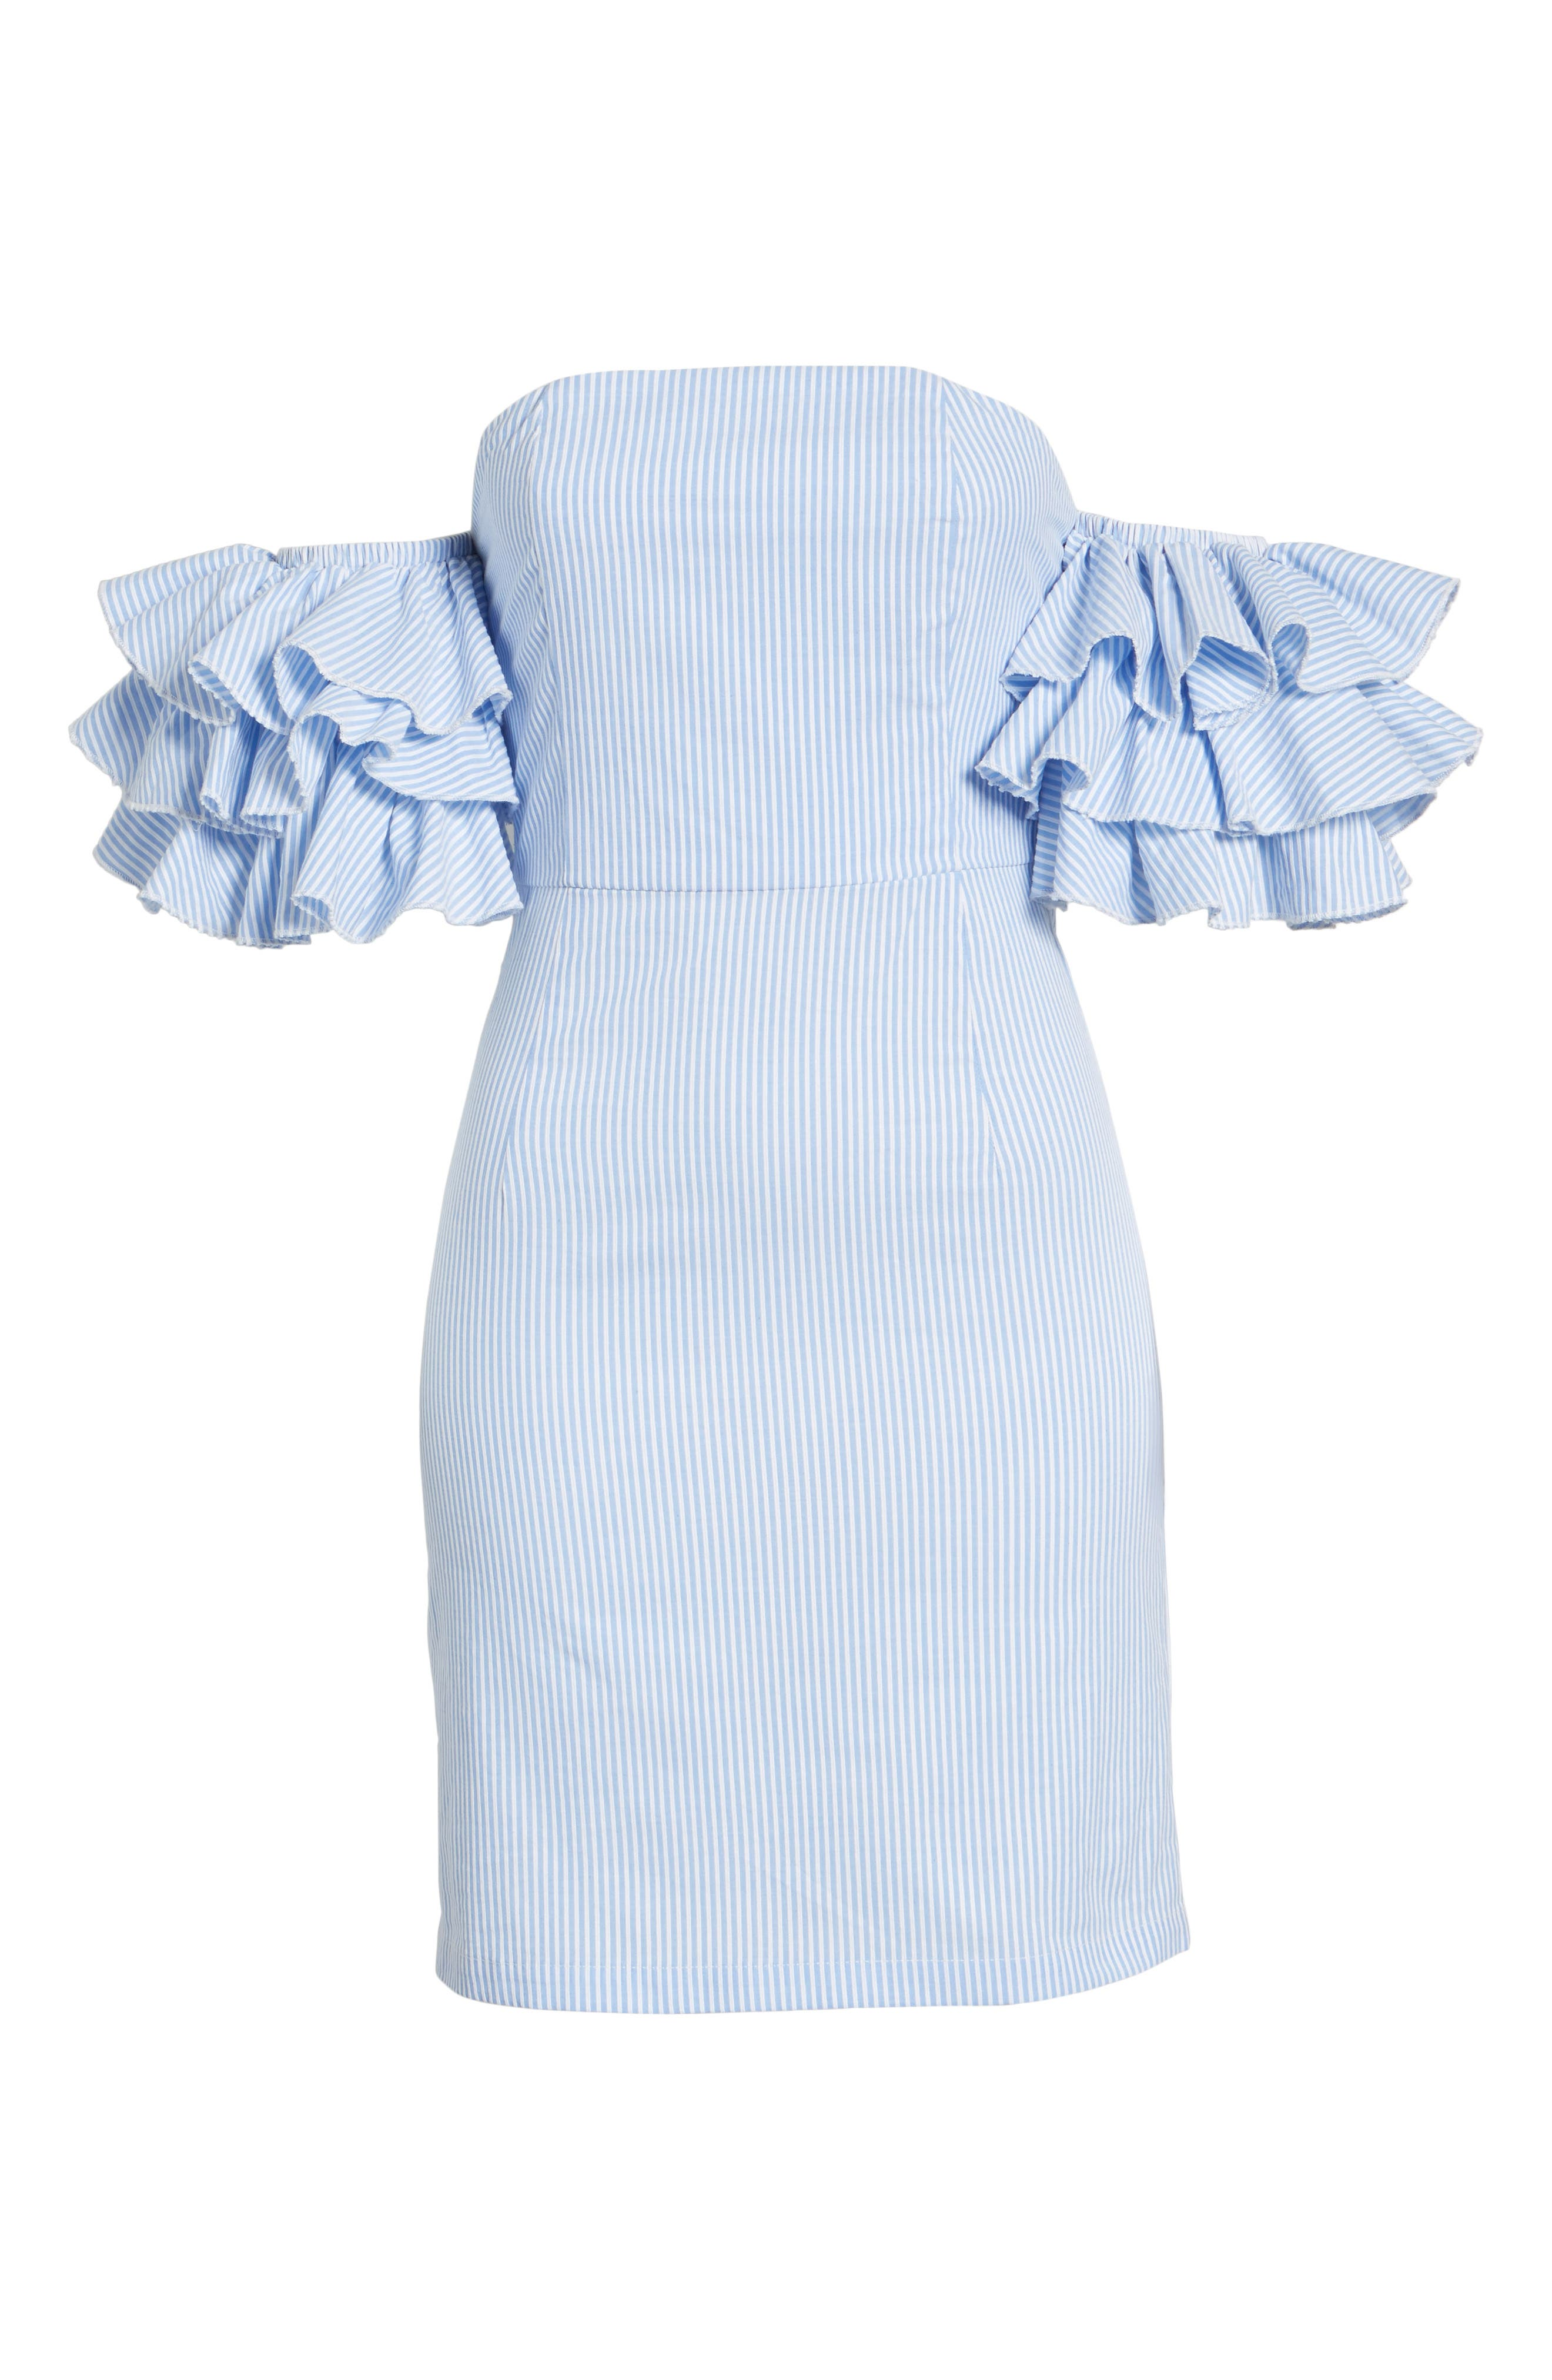 The Malibu Off the Shoulder Dress,                             Alternate thumbnail 8, color,                             Pinstriped Blue